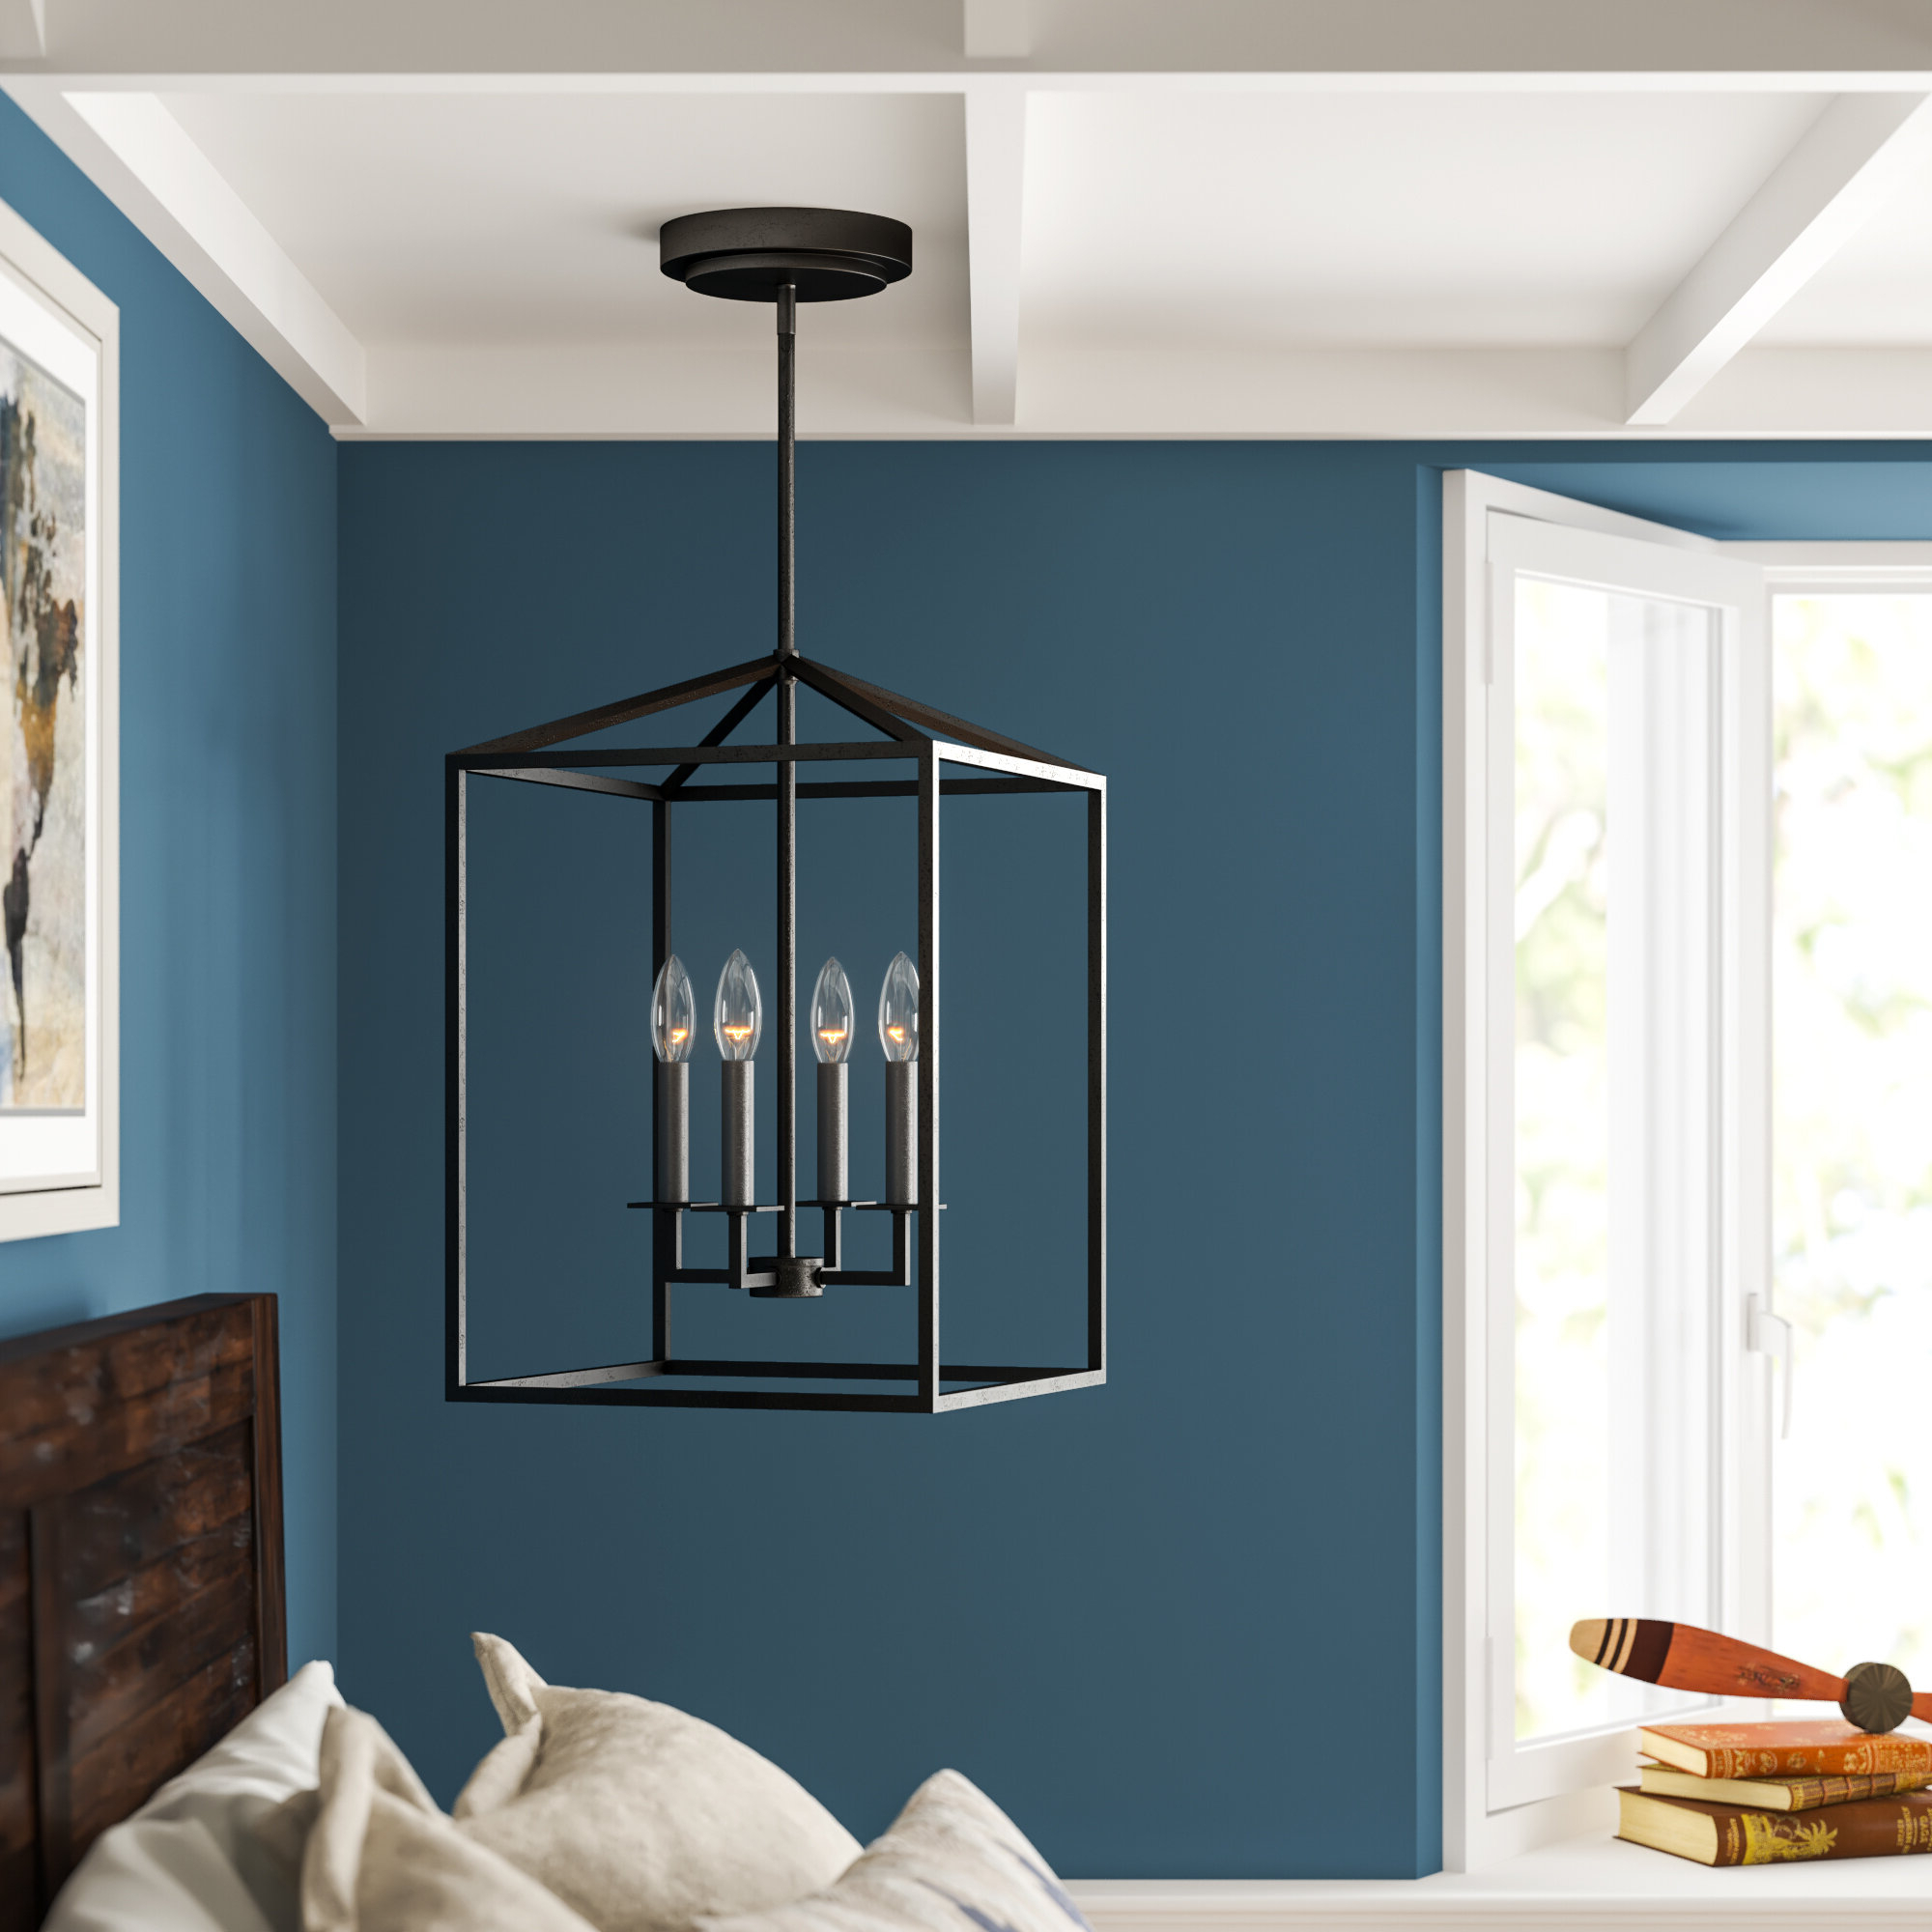 Newest Odie 4 Light Lantern Square Pendants Throughout Odie 4 Light Lantern Square/rectangle Pendant (View 6 of 25)